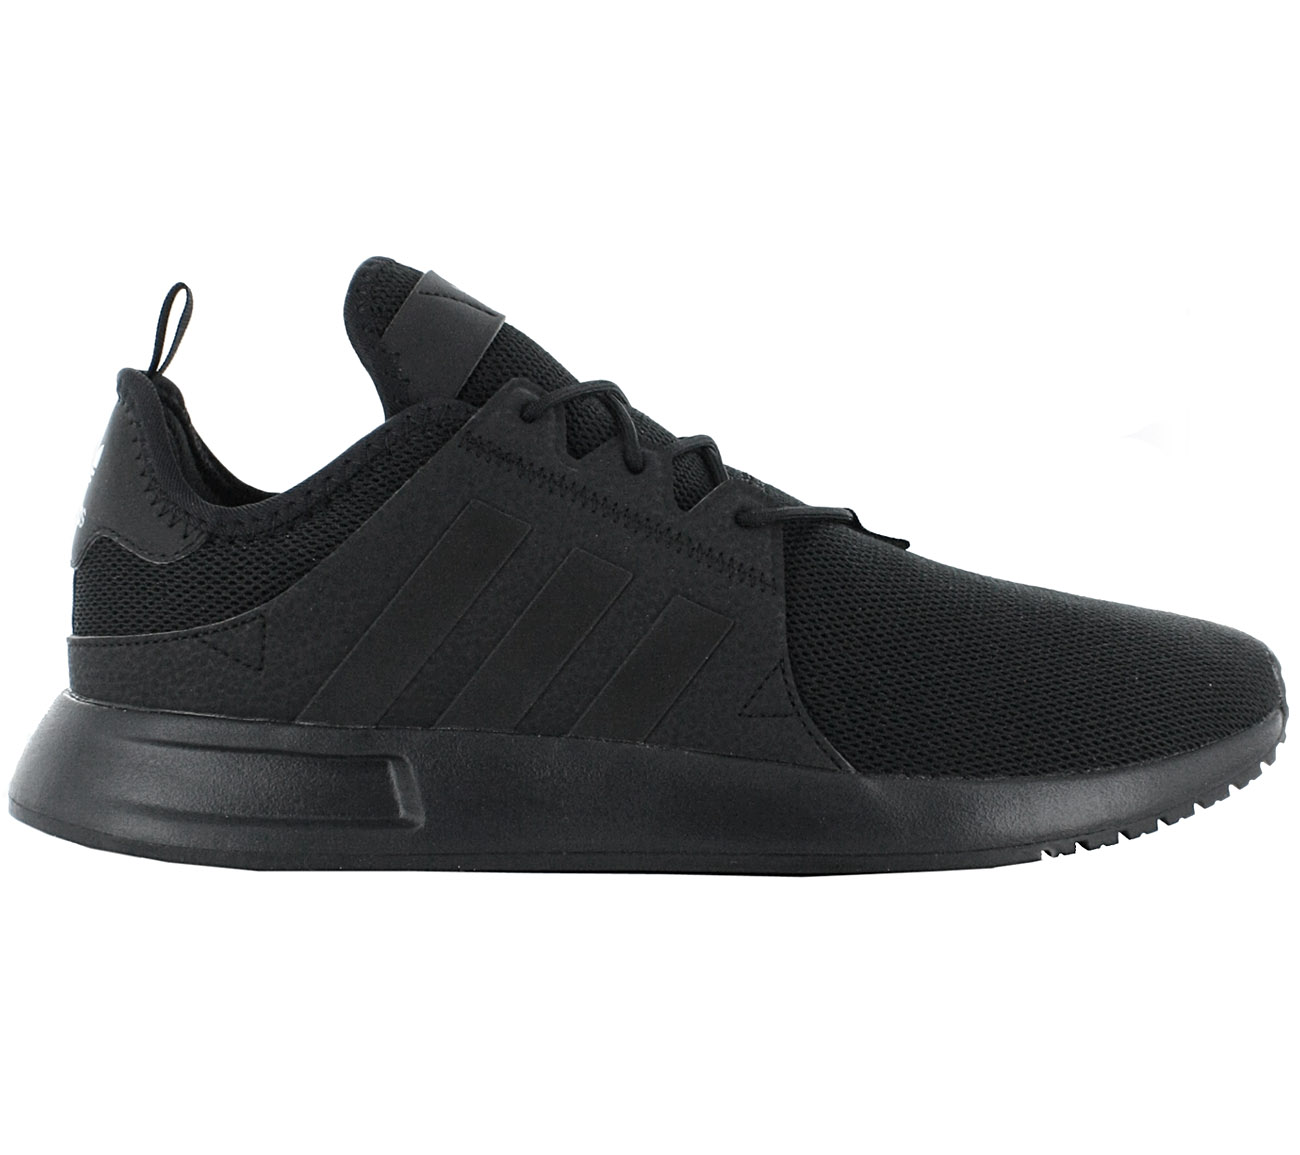 15100a28345 Adidas Men s Sneakers x Plr Shoes Black Sneakers Leisure Fitness ...